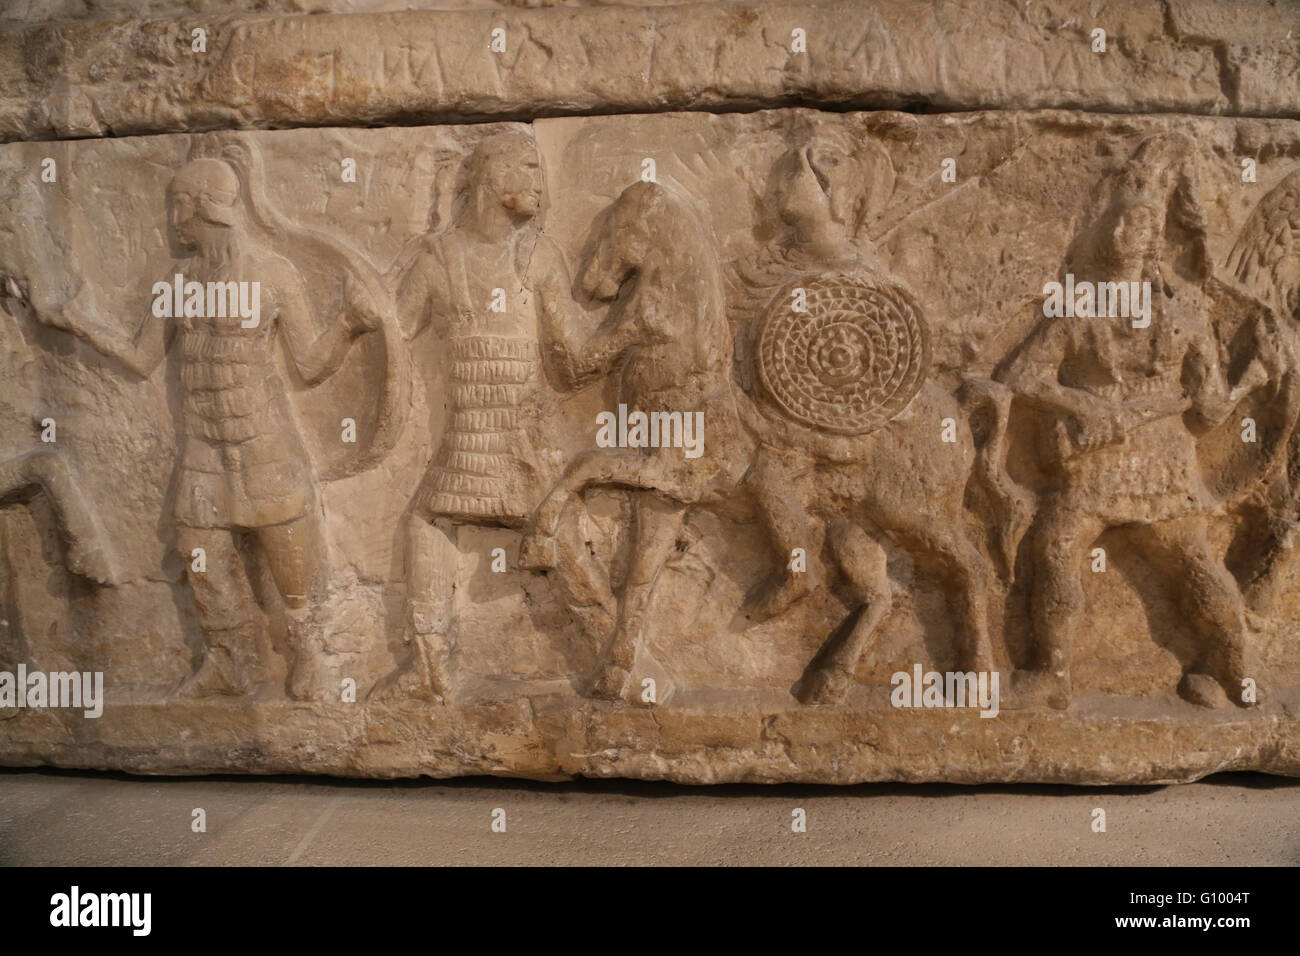 Etruscan cinerary urn. Relief. Soldiers.  Chiusi, Italy. 3rd c. BC. Terracotta. Louvre Museum. Paris. France. - Stock Image